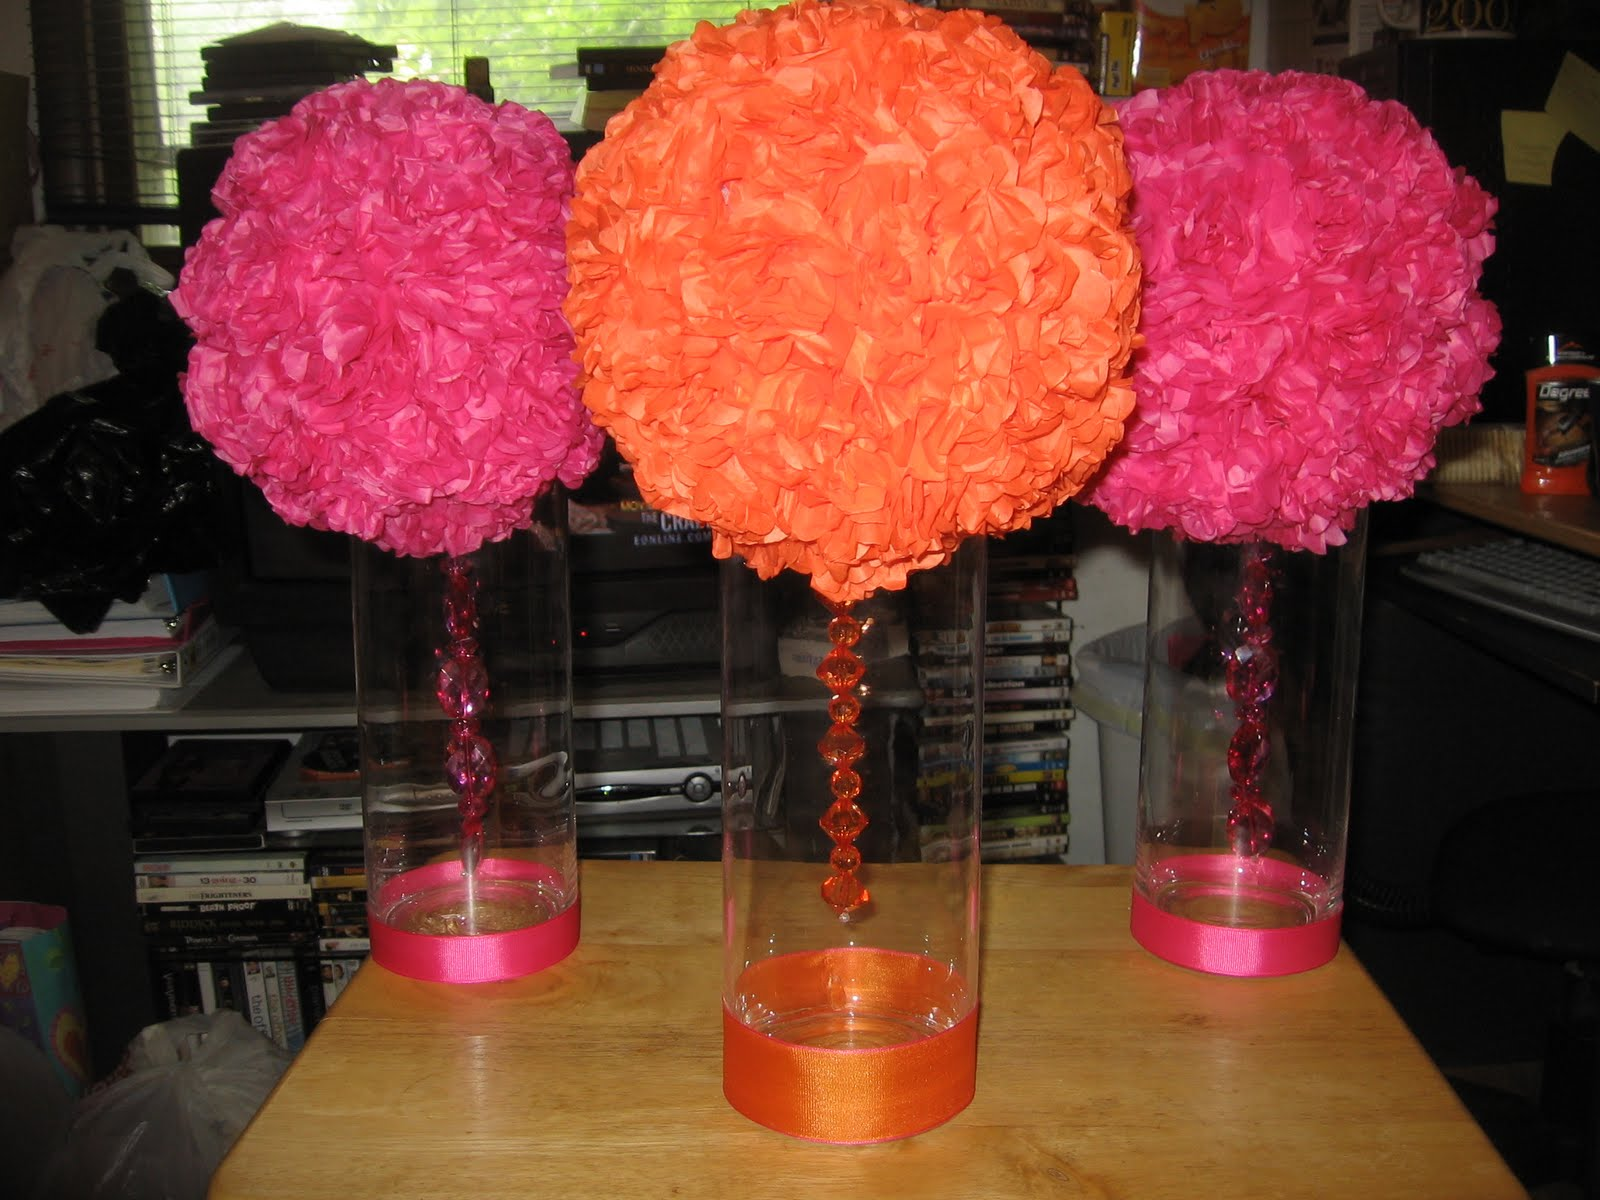 The DIY Bride: Escort Card Table Centerpieces Finished!